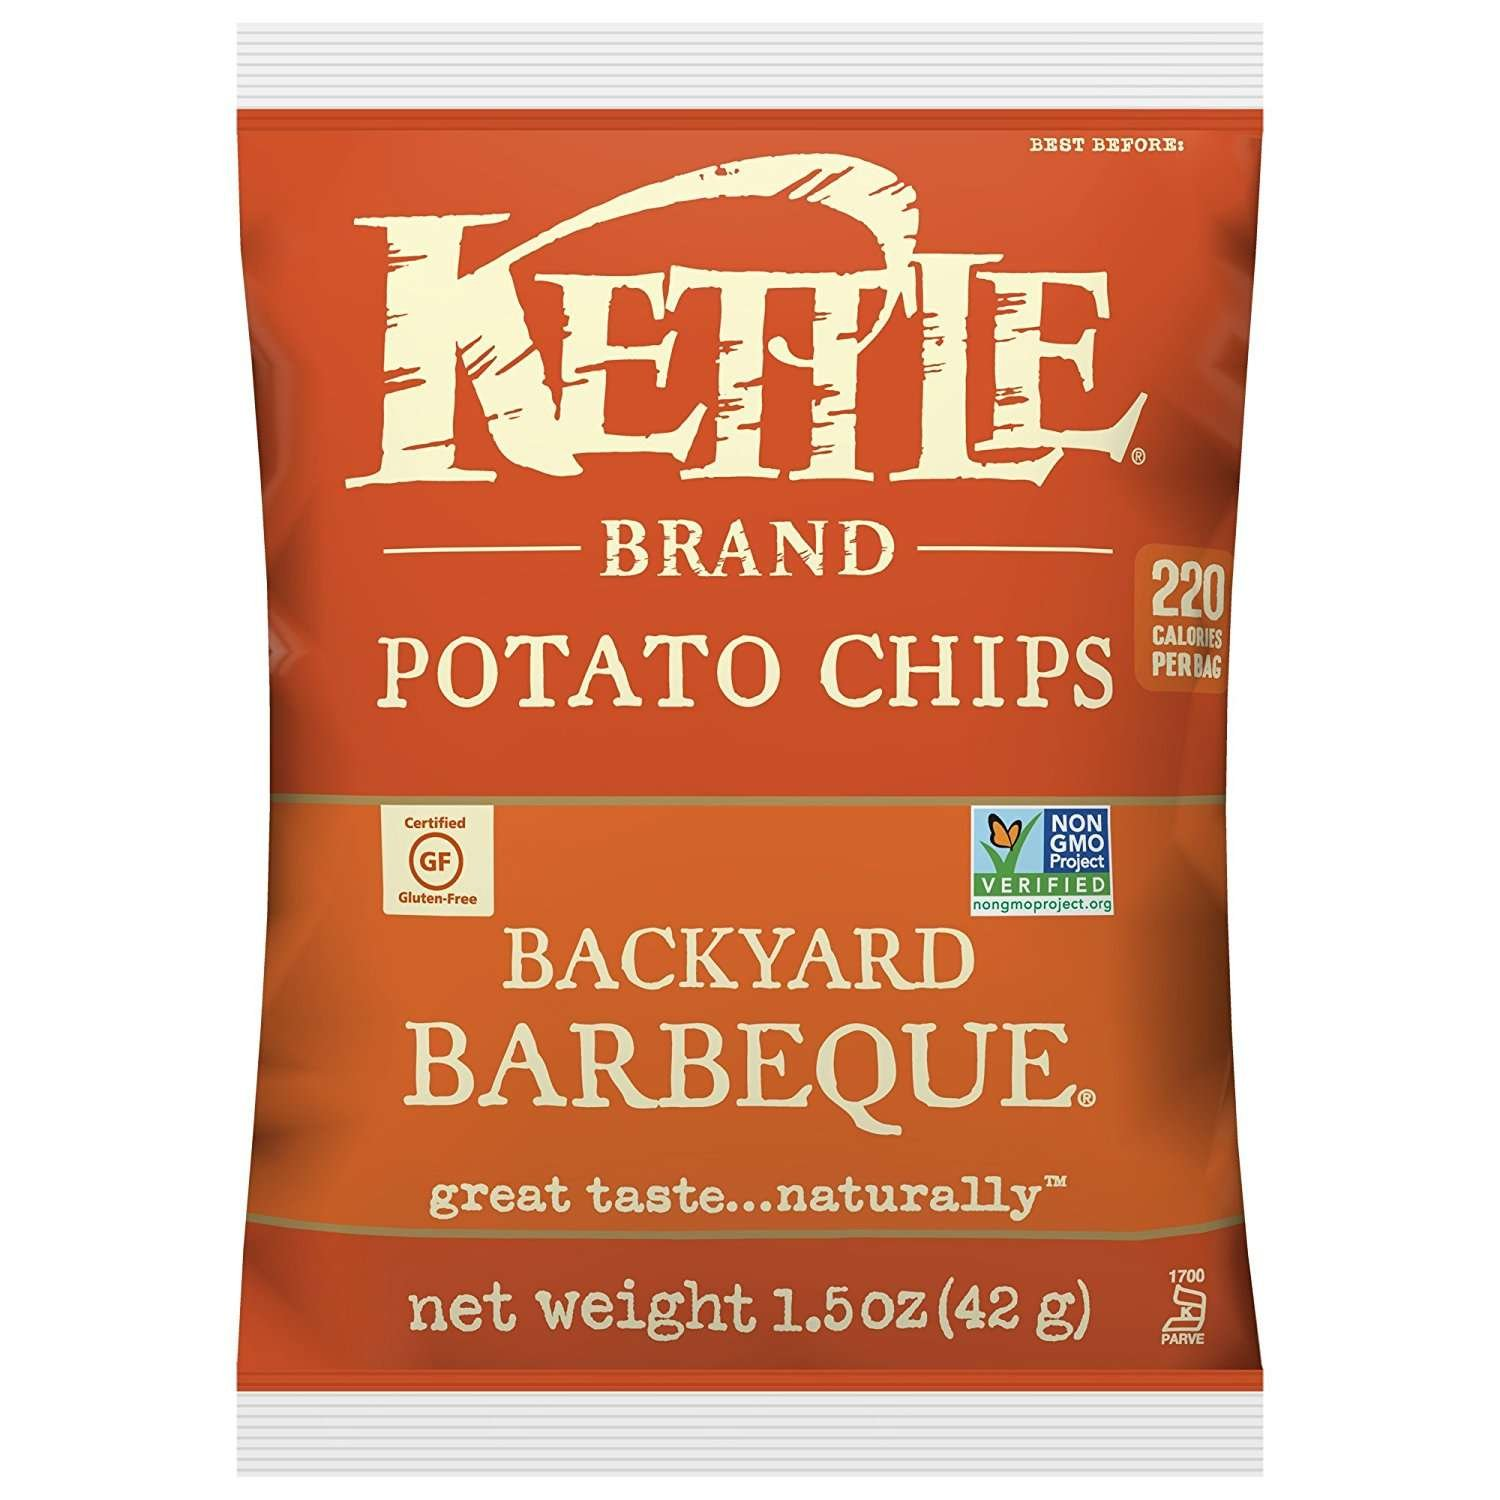 Kettle Brand Potato Chips, Backyard Barbeque, 1.5 Ounce (Pack of 24)